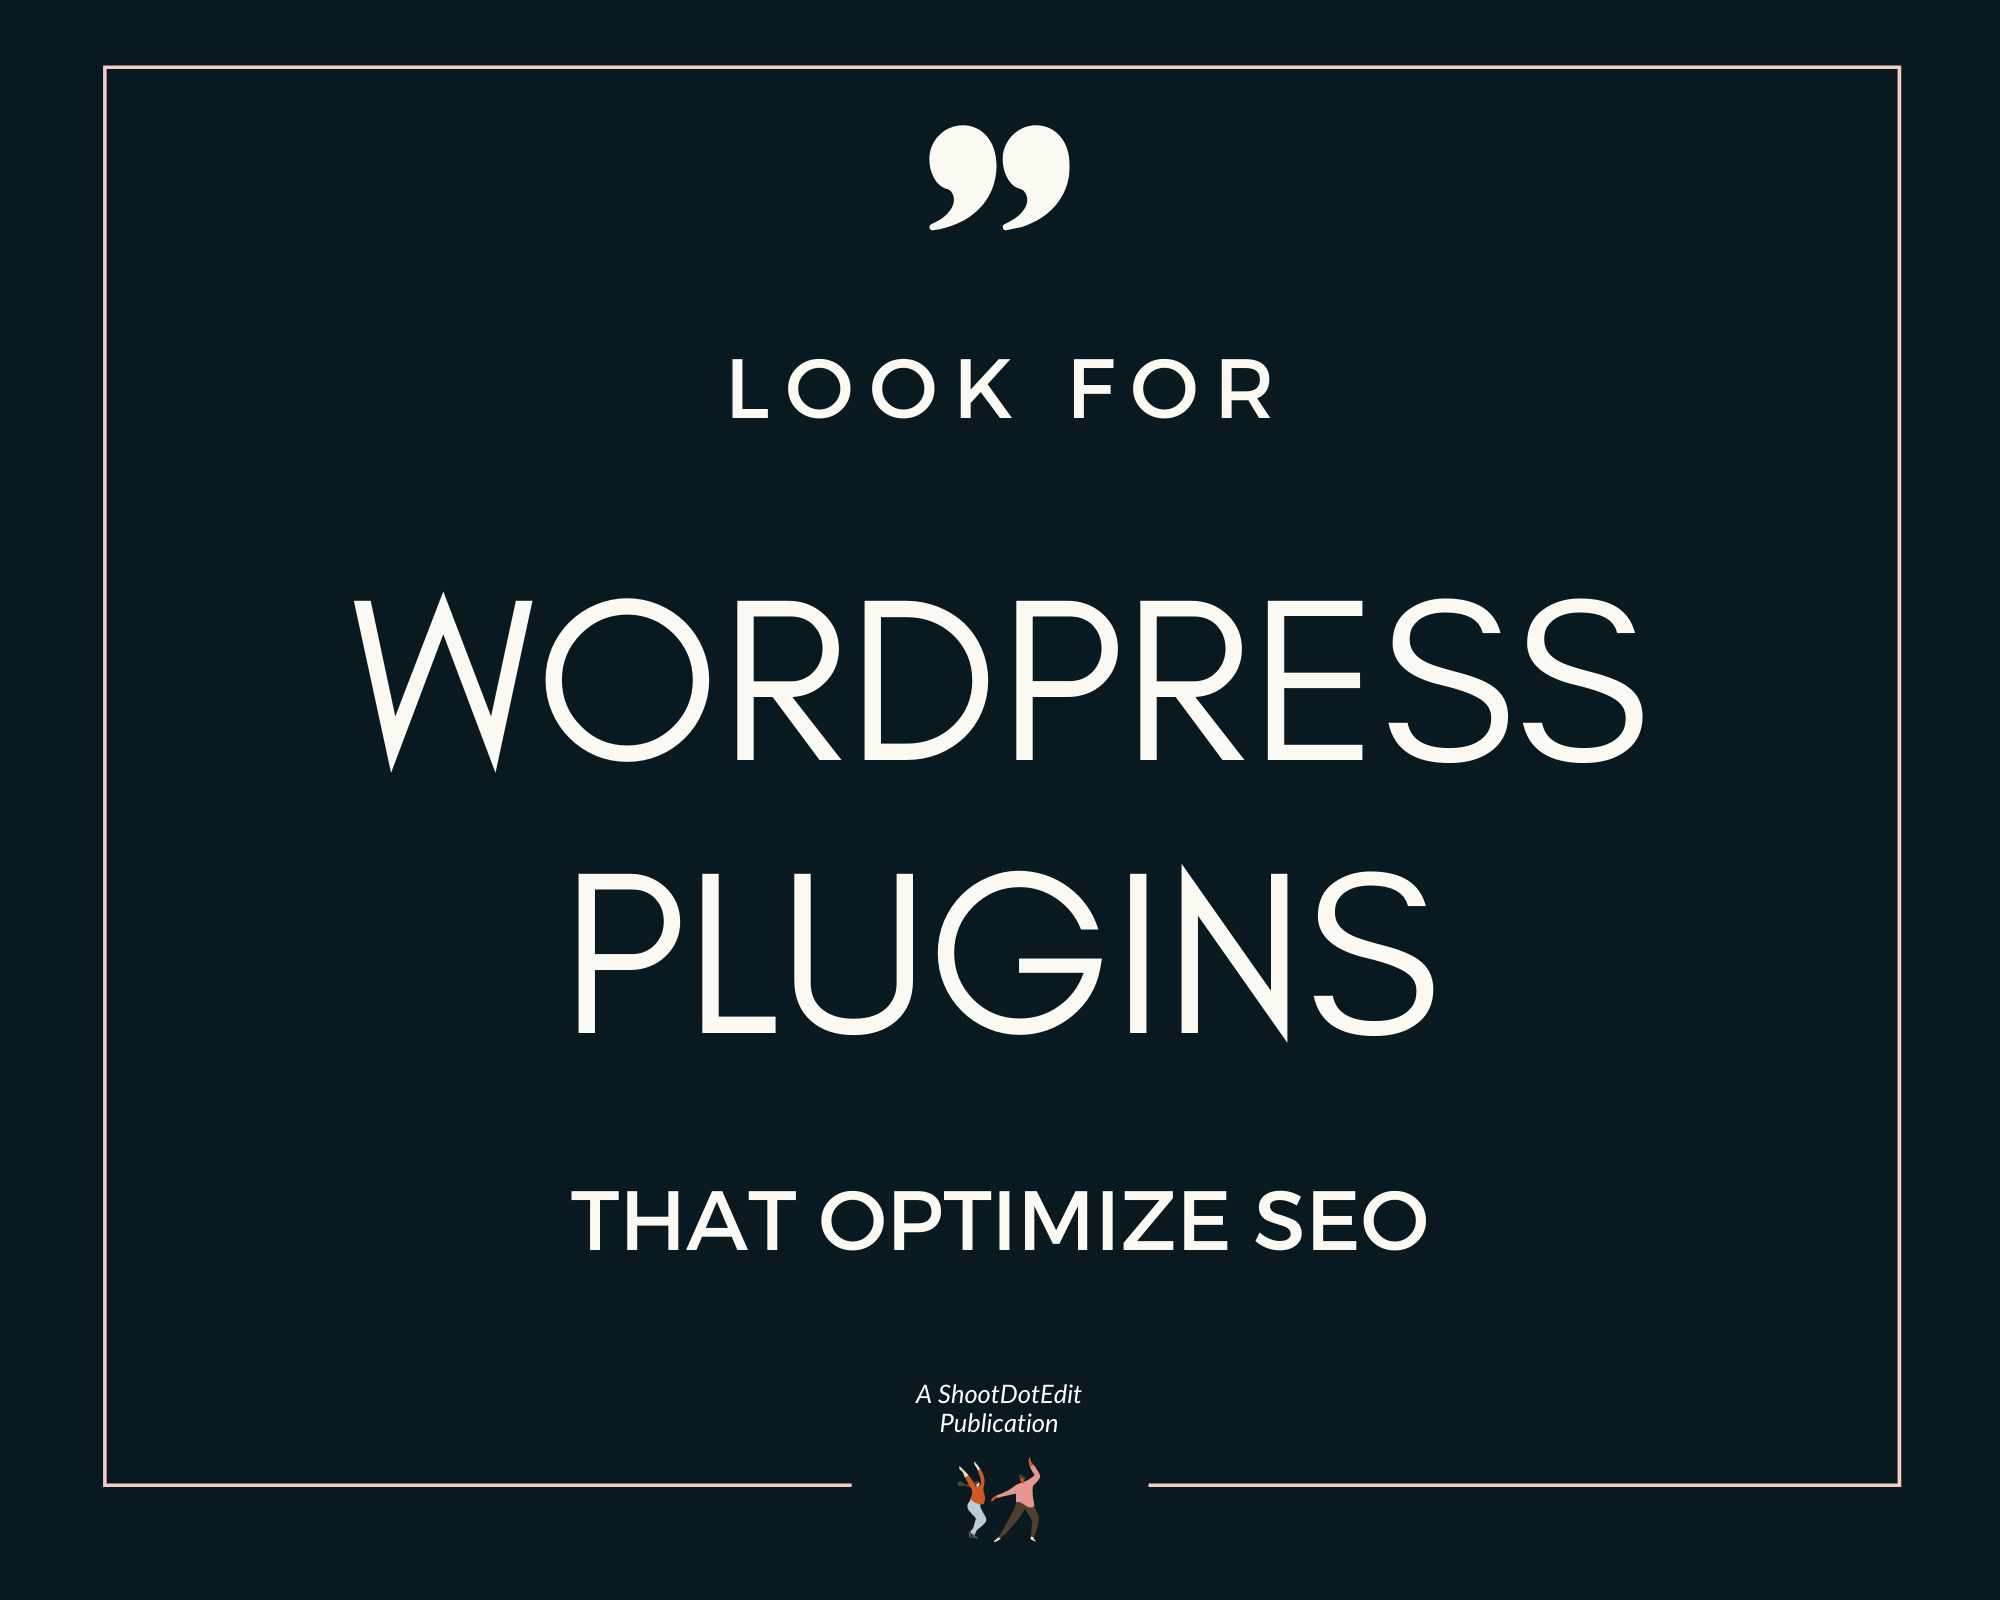 Infographic stating look for WordPress plugins that optimize SEO